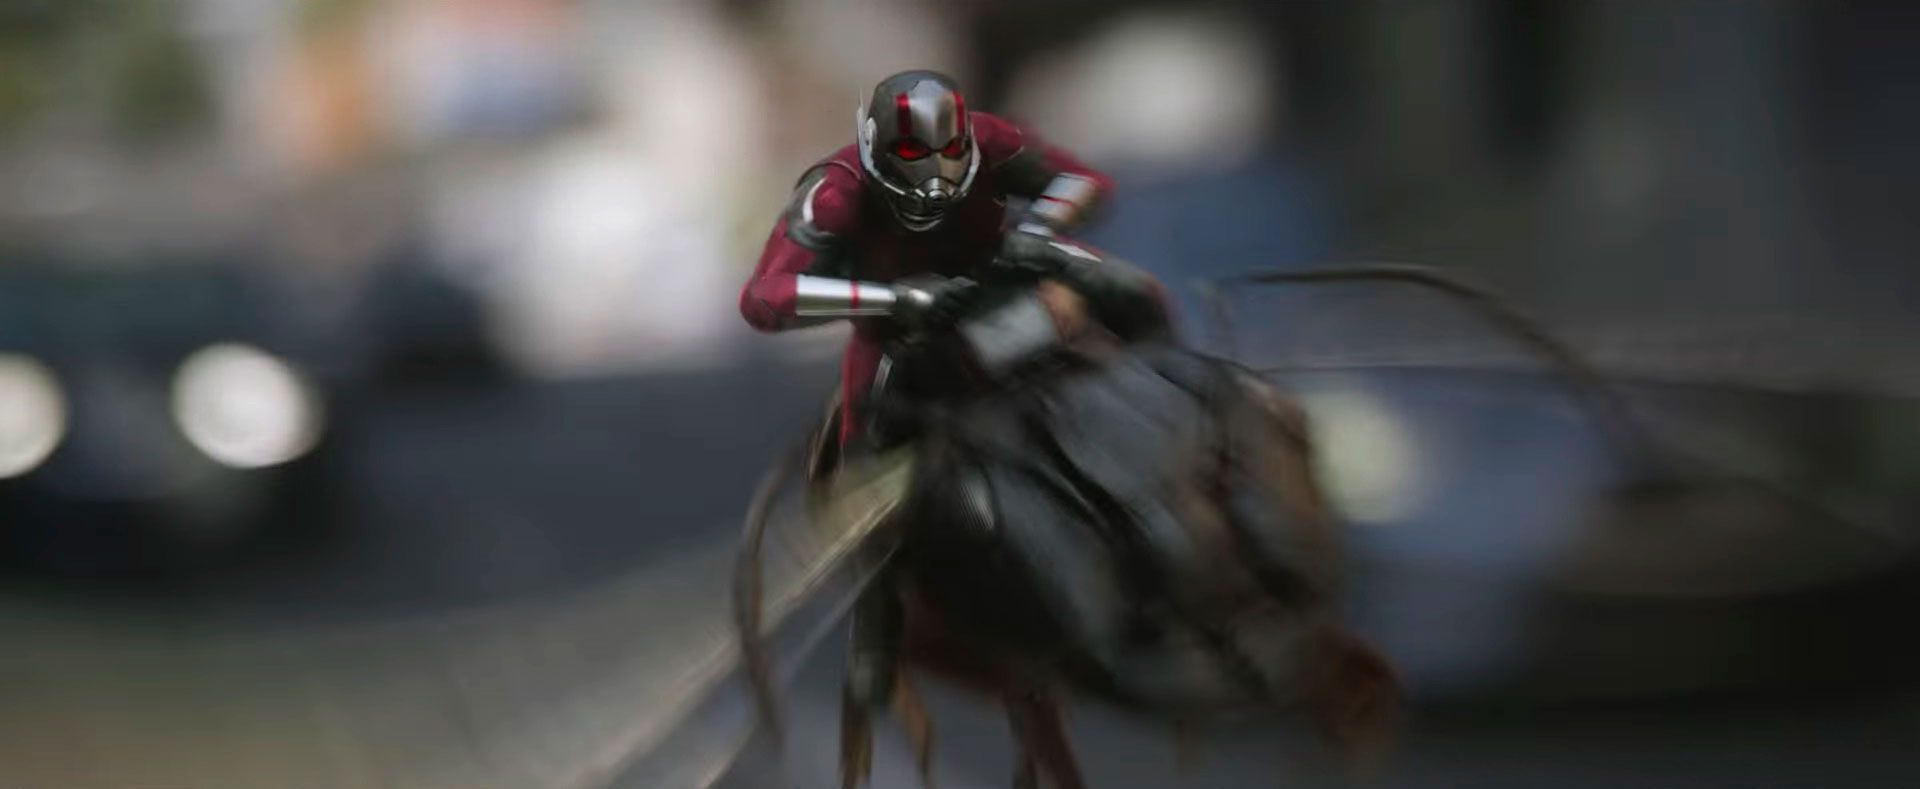 Ant-Man and the Wasp plot, cast, release date, spoilers and everything you need to know